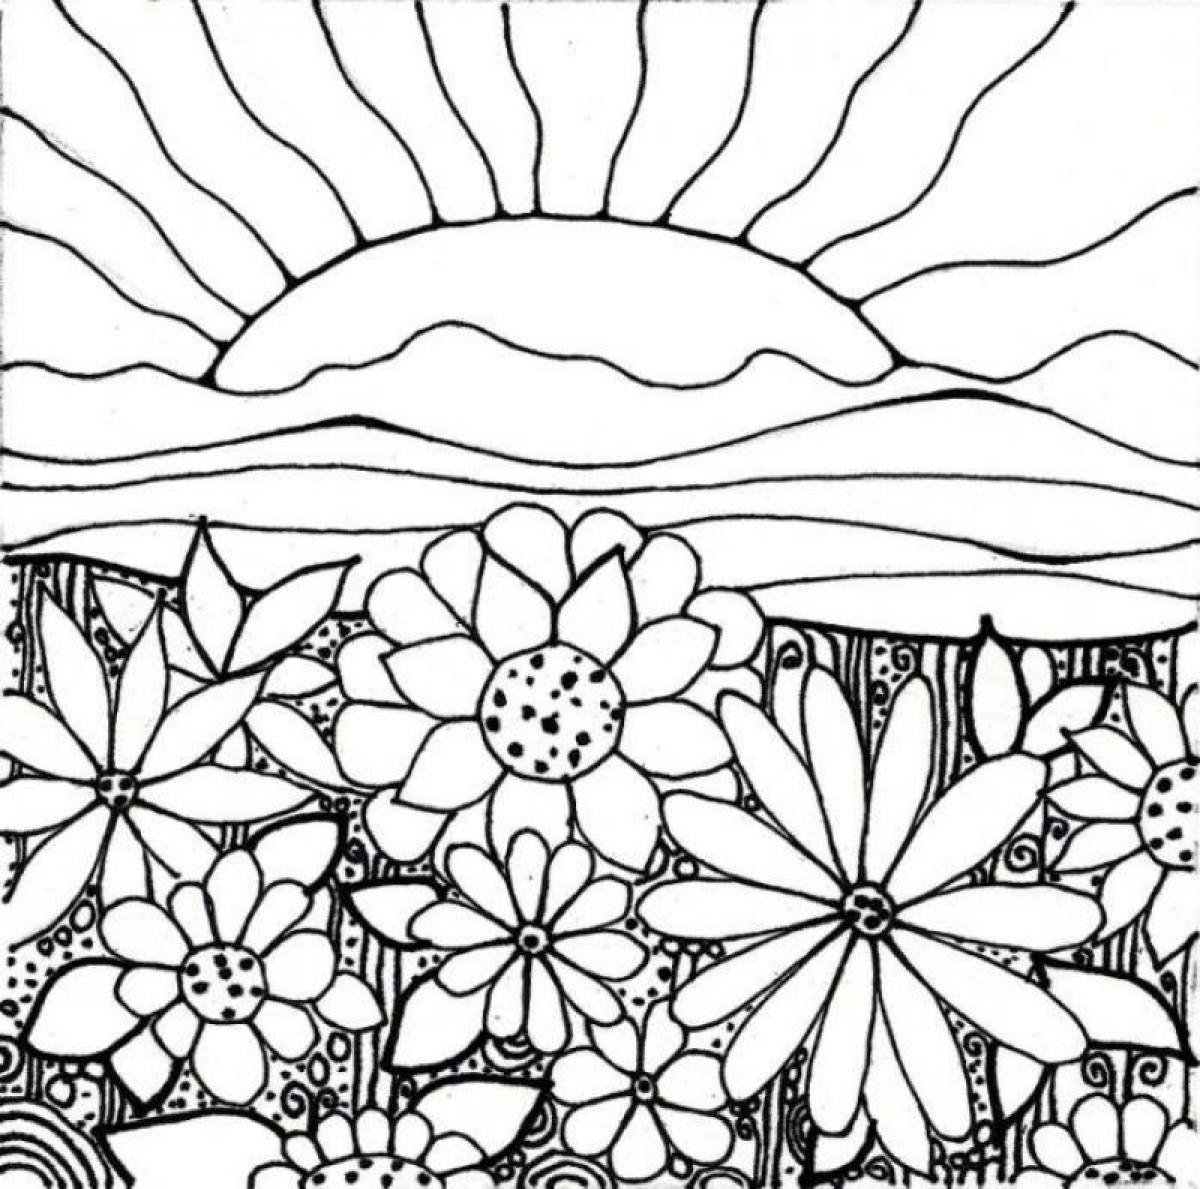 Gardening coloring pages to download and print for free for Flower garden coloring pages printable